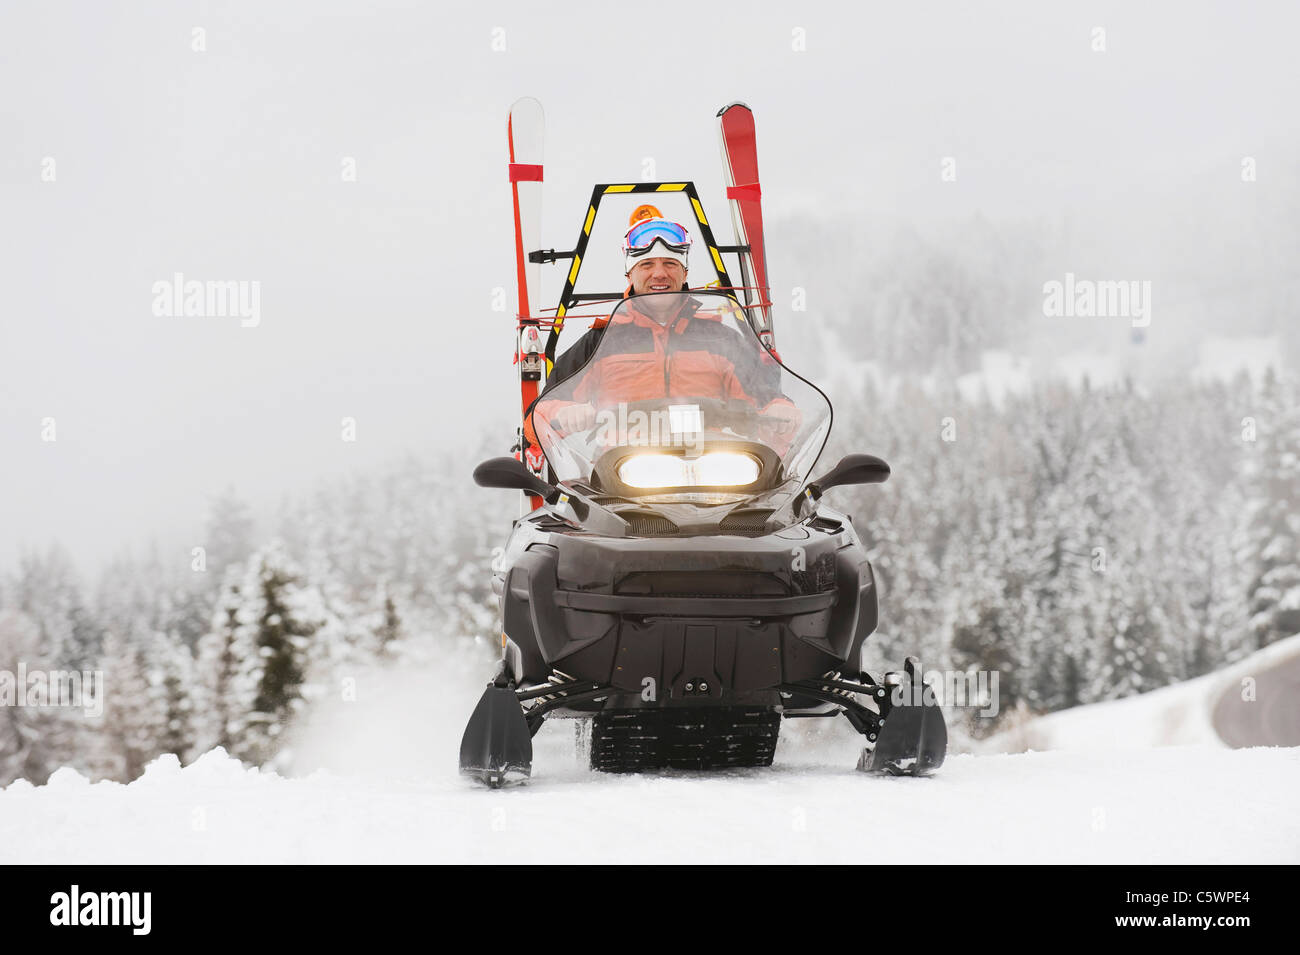 Italy, South Tyrol, Man driving snowmobile - Stock Image